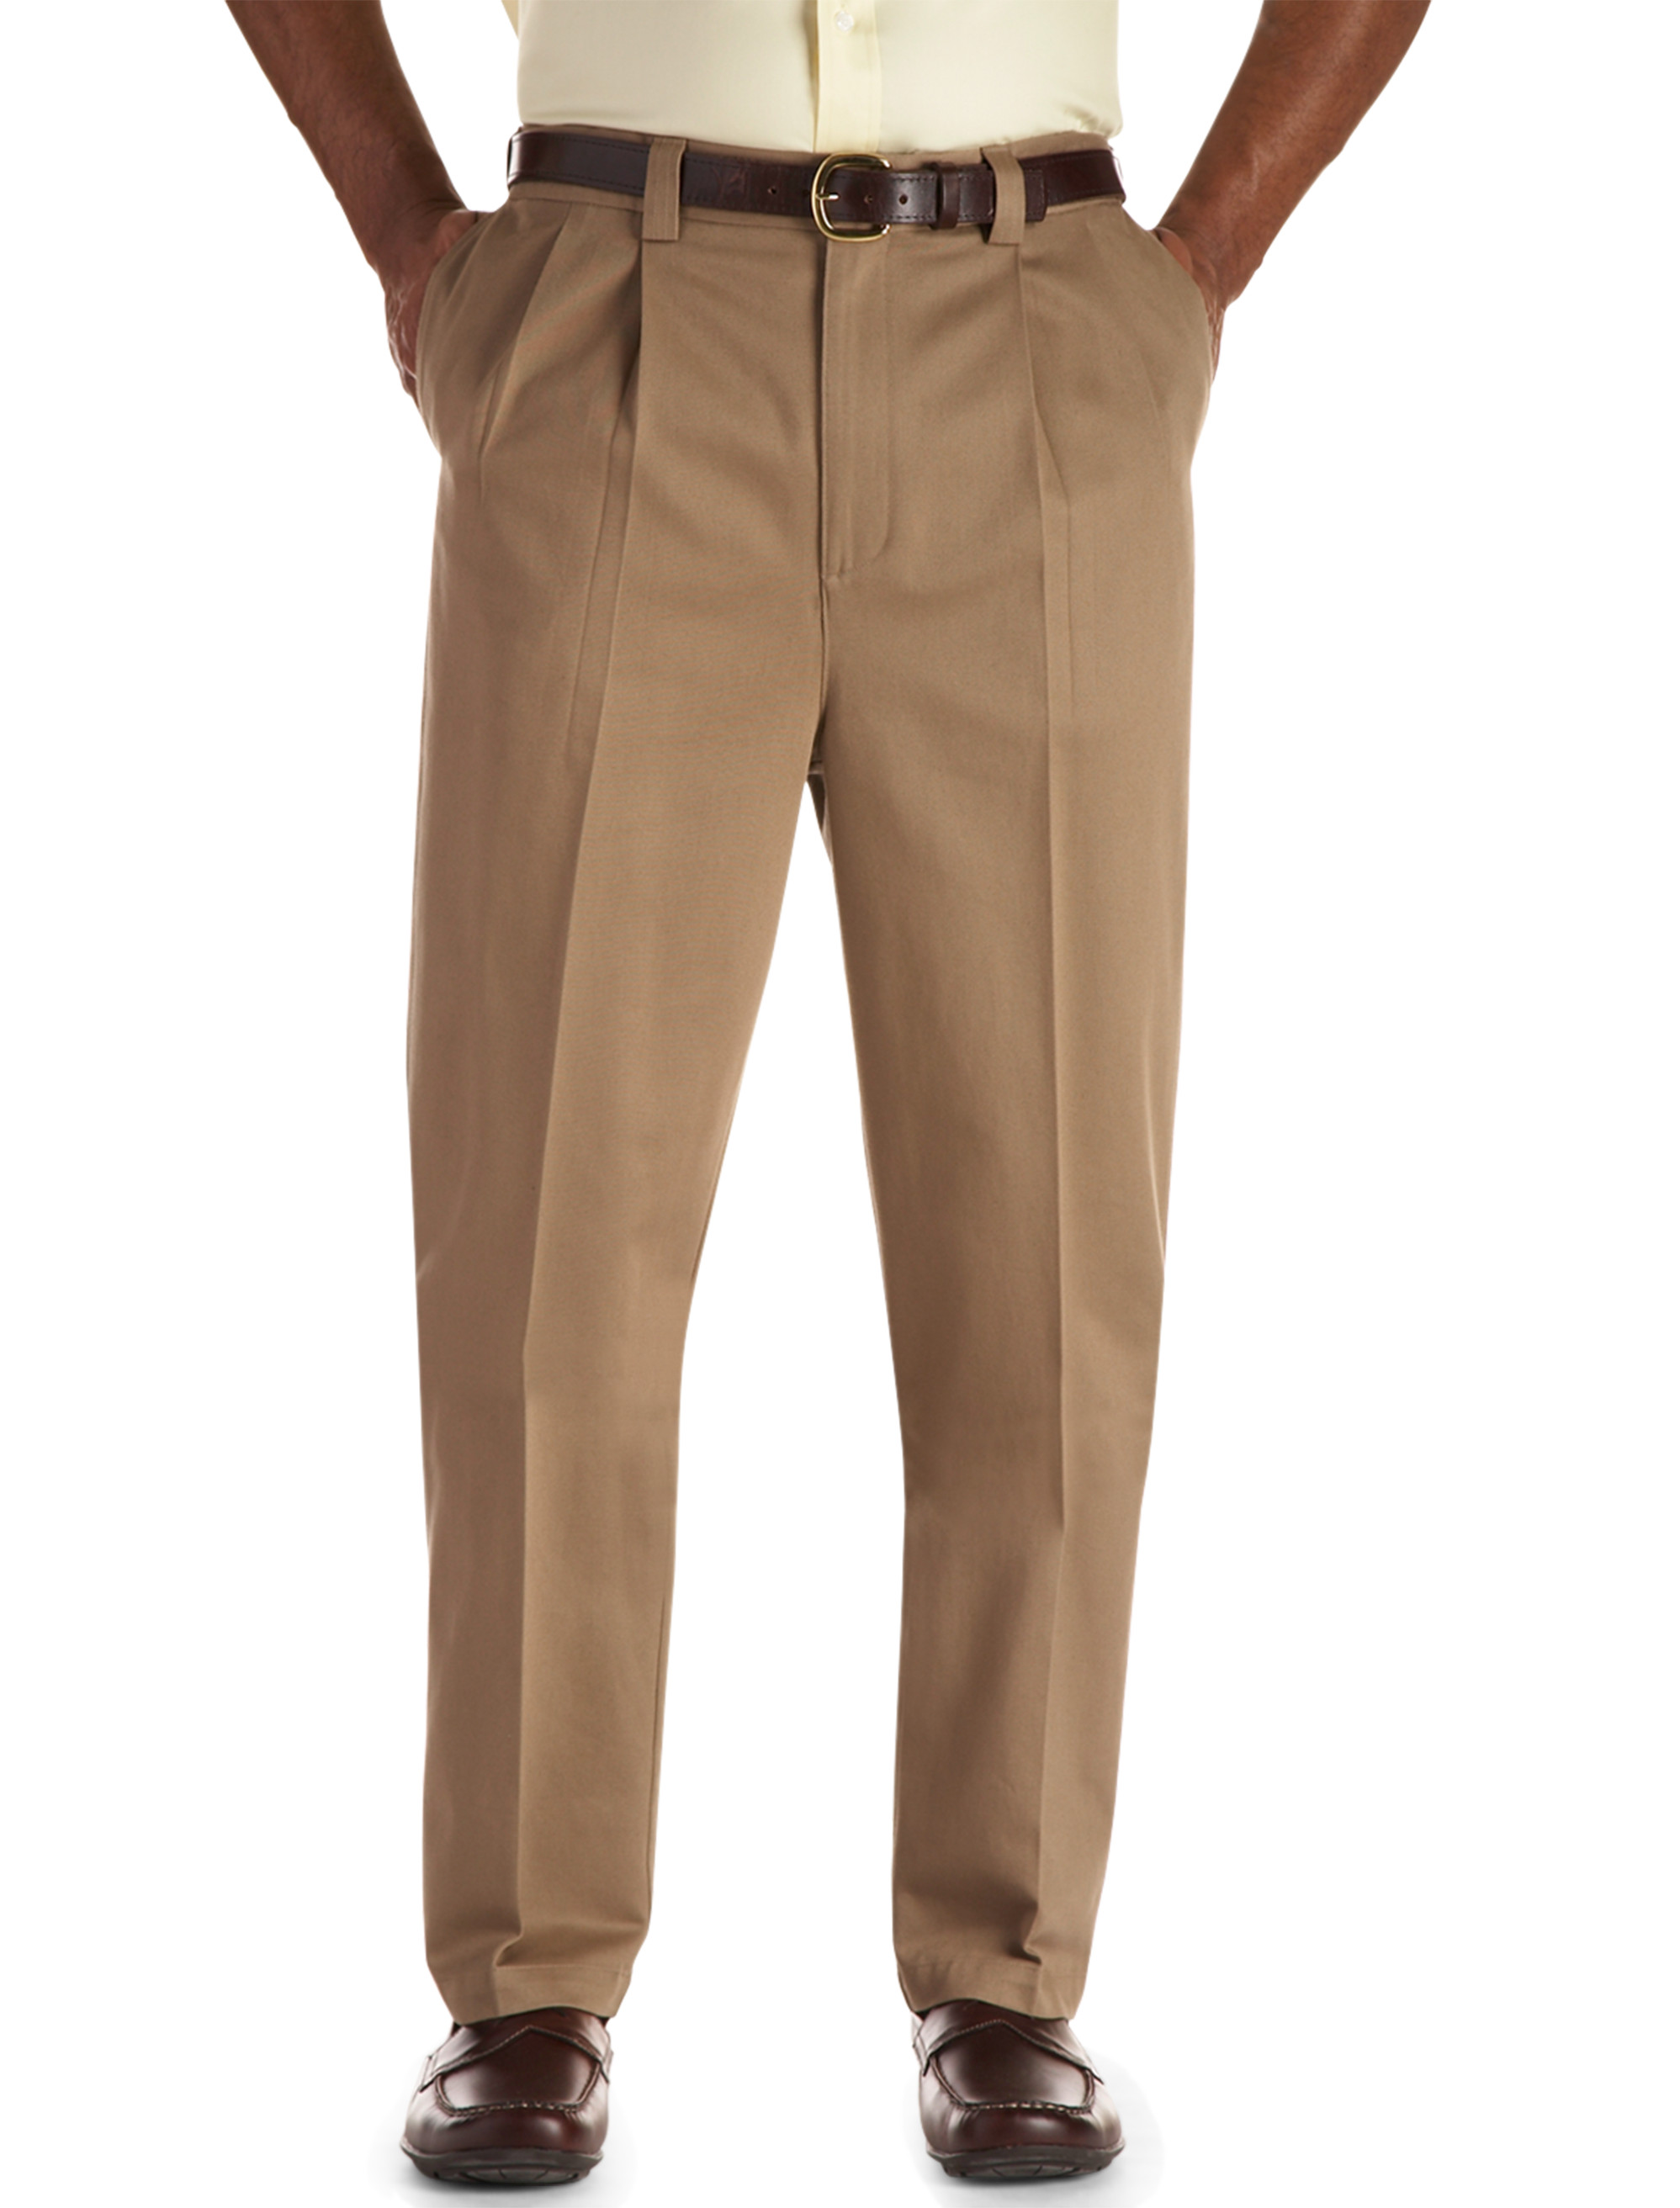 Big and Tall Pants & Shorts | Men's Dress Pants